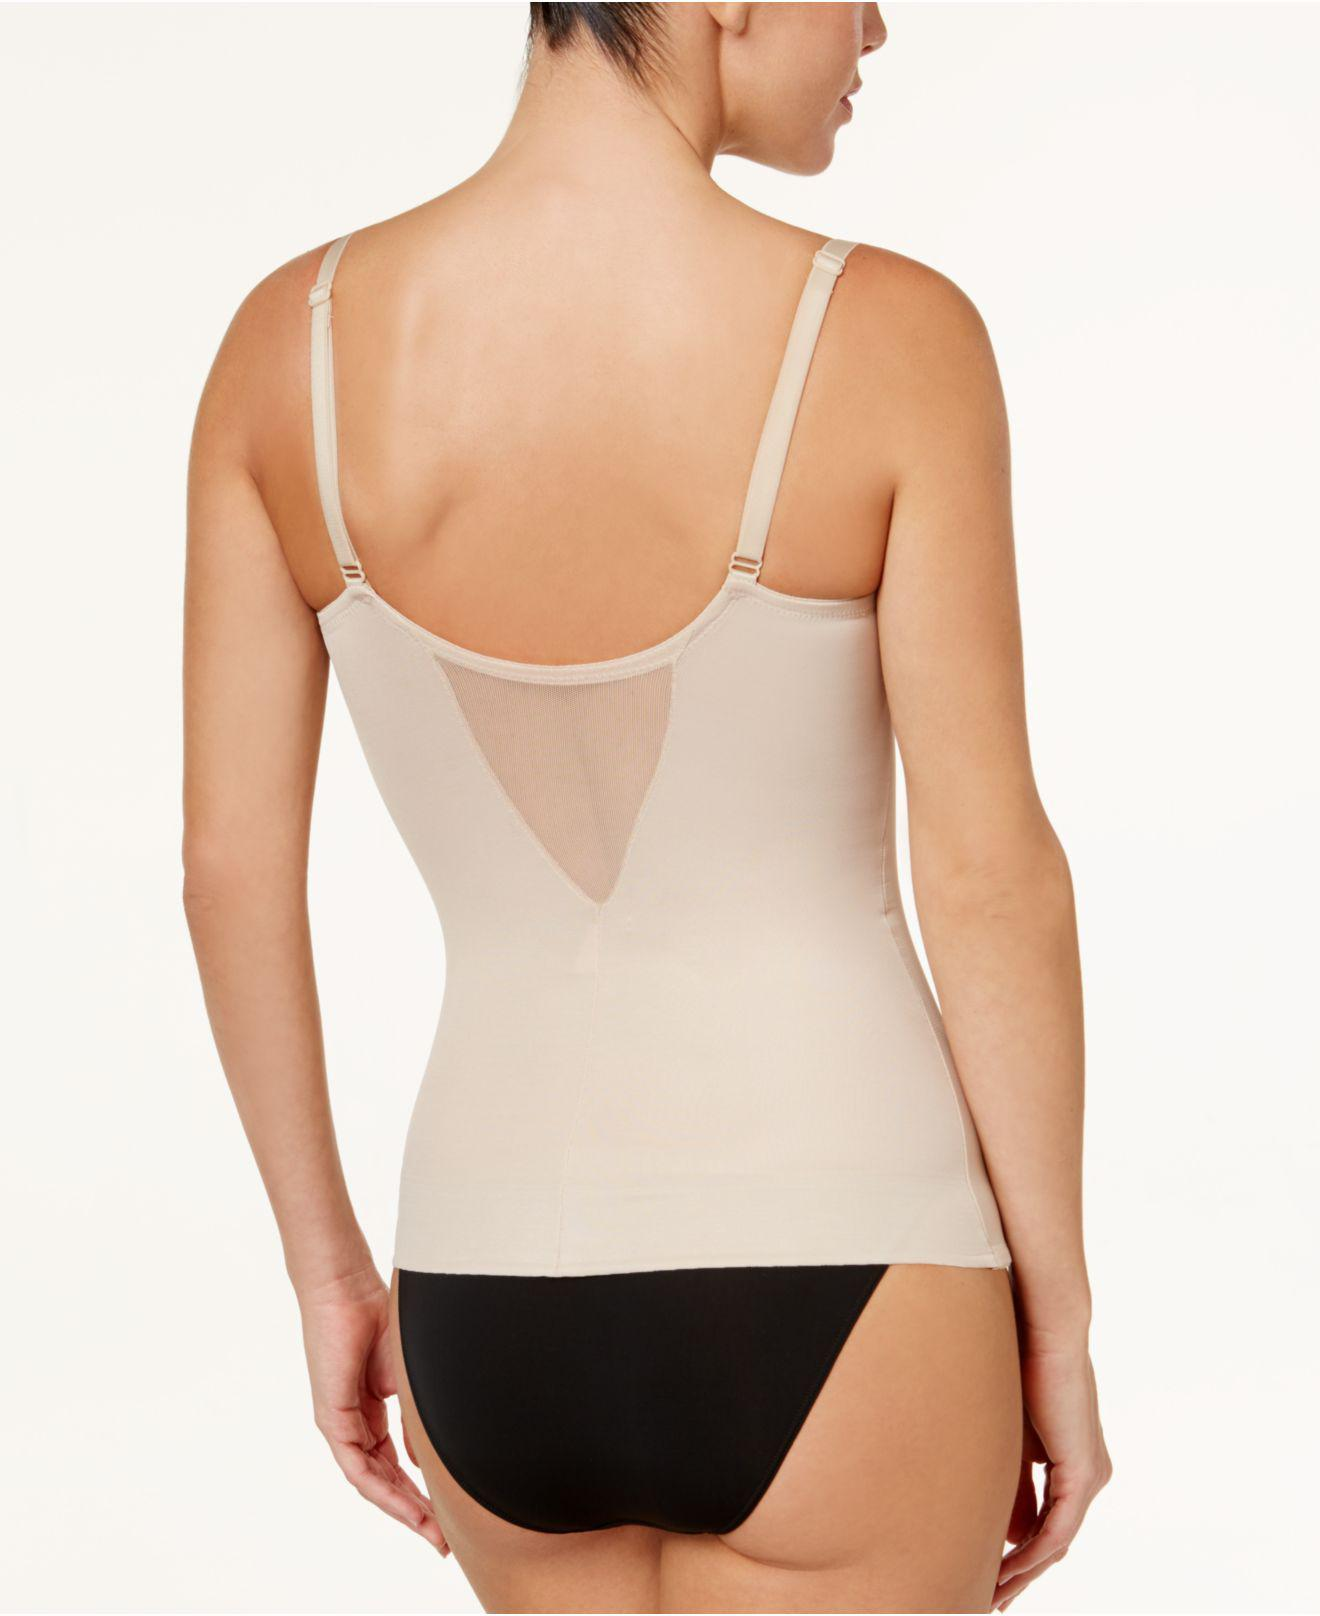 e14dd3a8e3 Lyst - Miraclesuit Extra Firm Control Sheer Underwire Camisole 2782 in  Natural